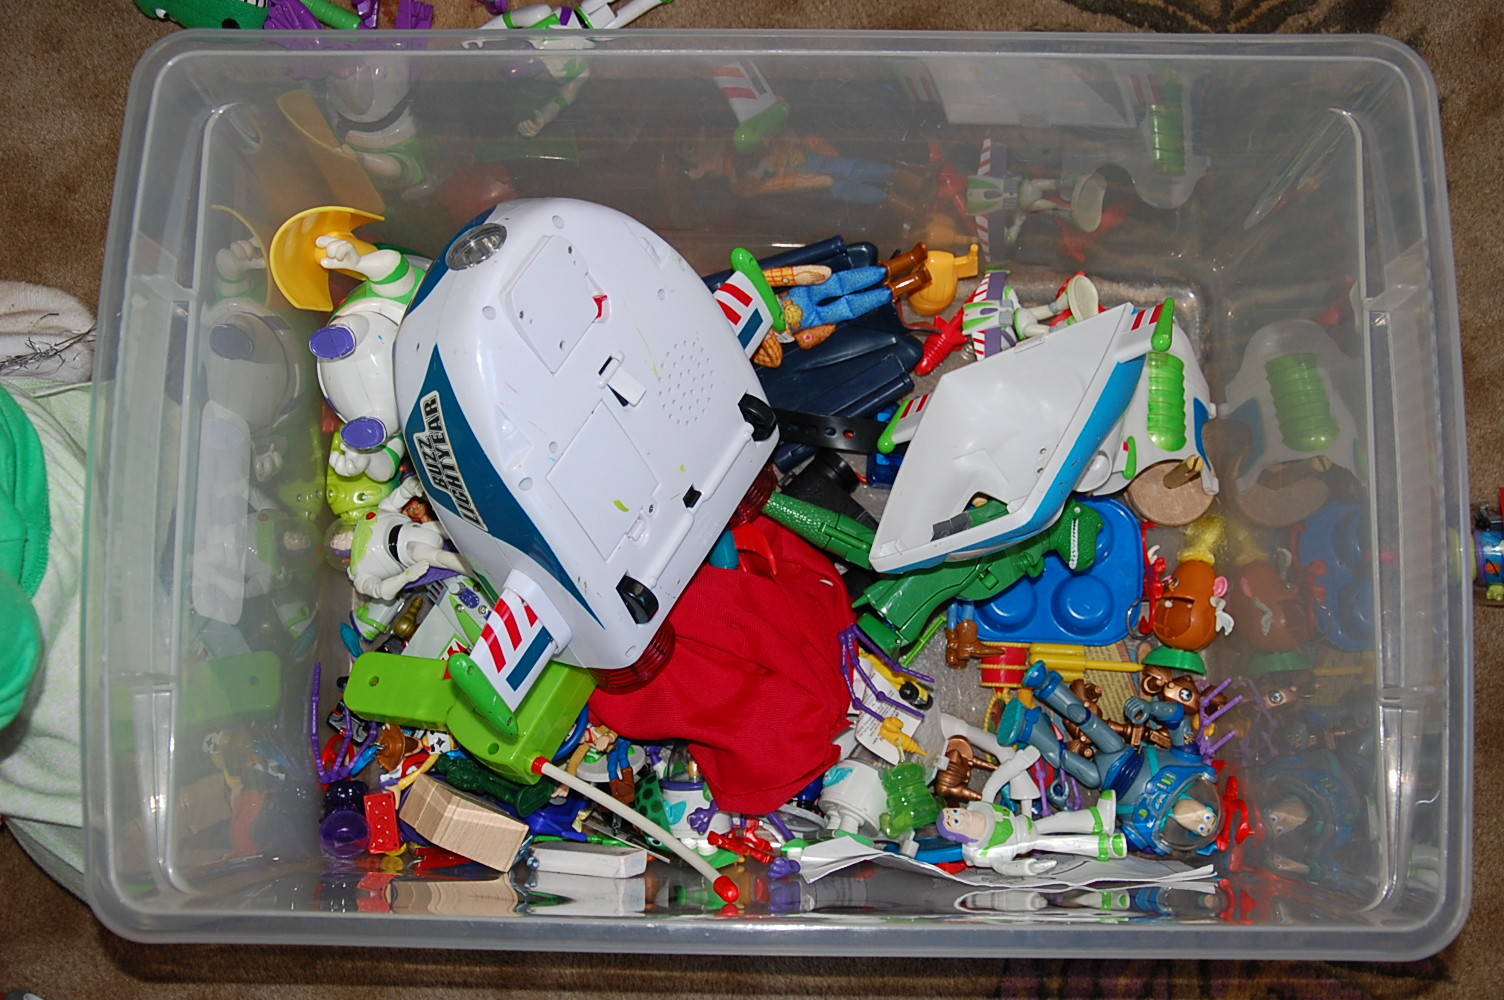 The bin of Toy Story Happiness